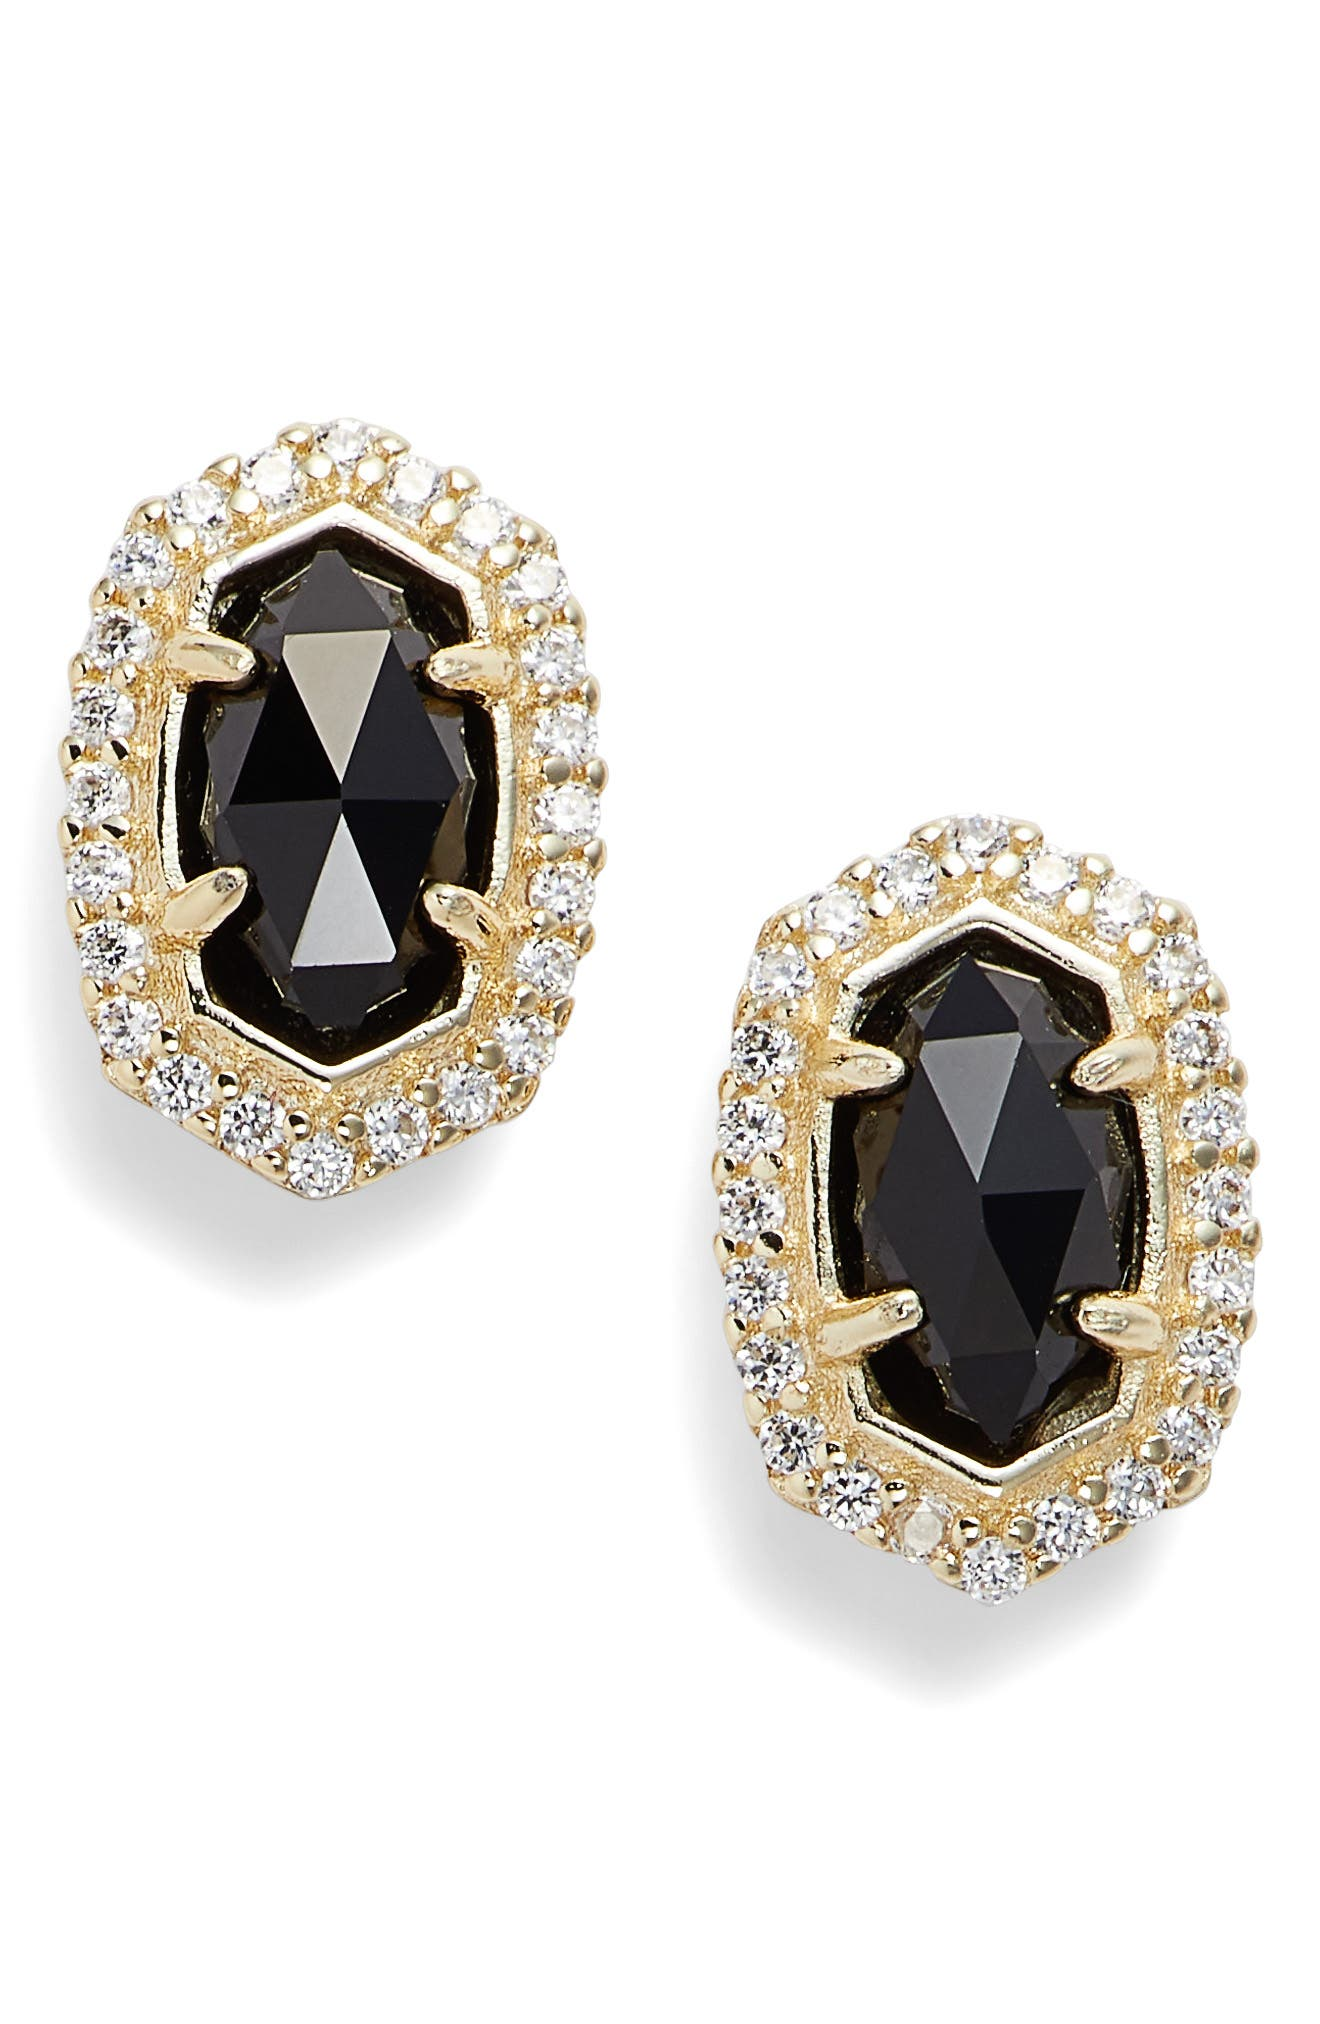 KENDRA SCOTT 'Cade' Drusy Stud Earrings, Main, color, 001